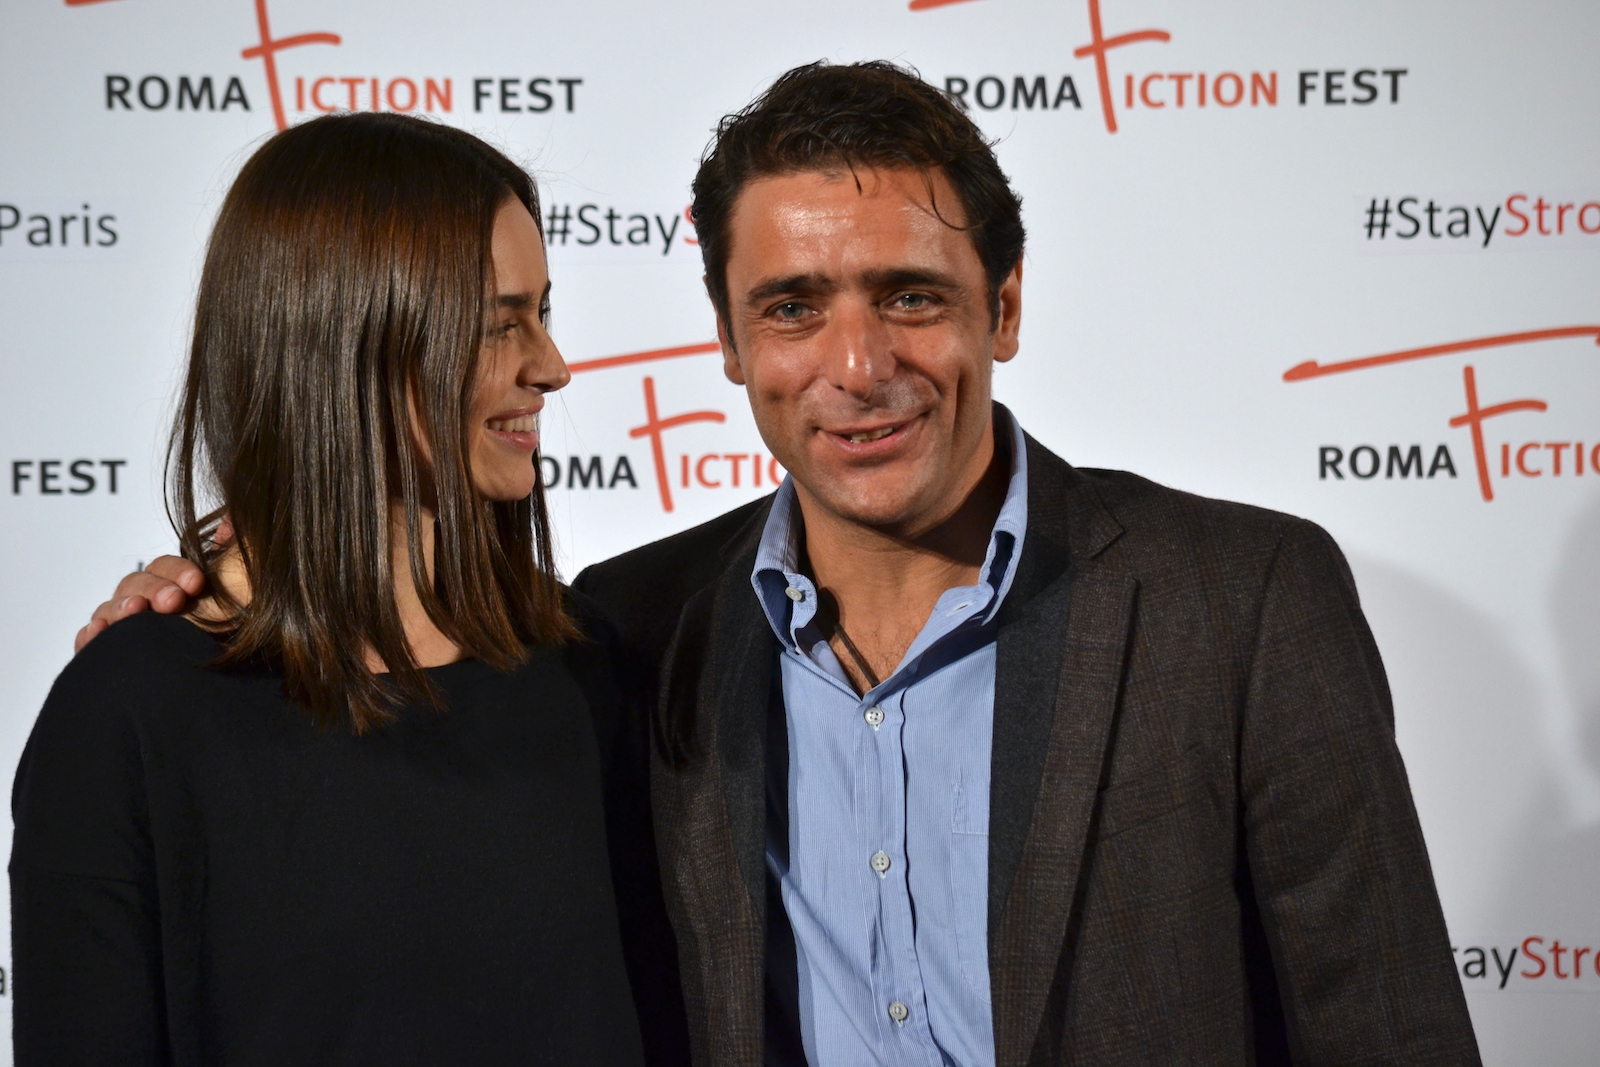 Roma Fiction Fest 2015: Kasia Smutniak e Adriano Giannini al photocall di Limbo